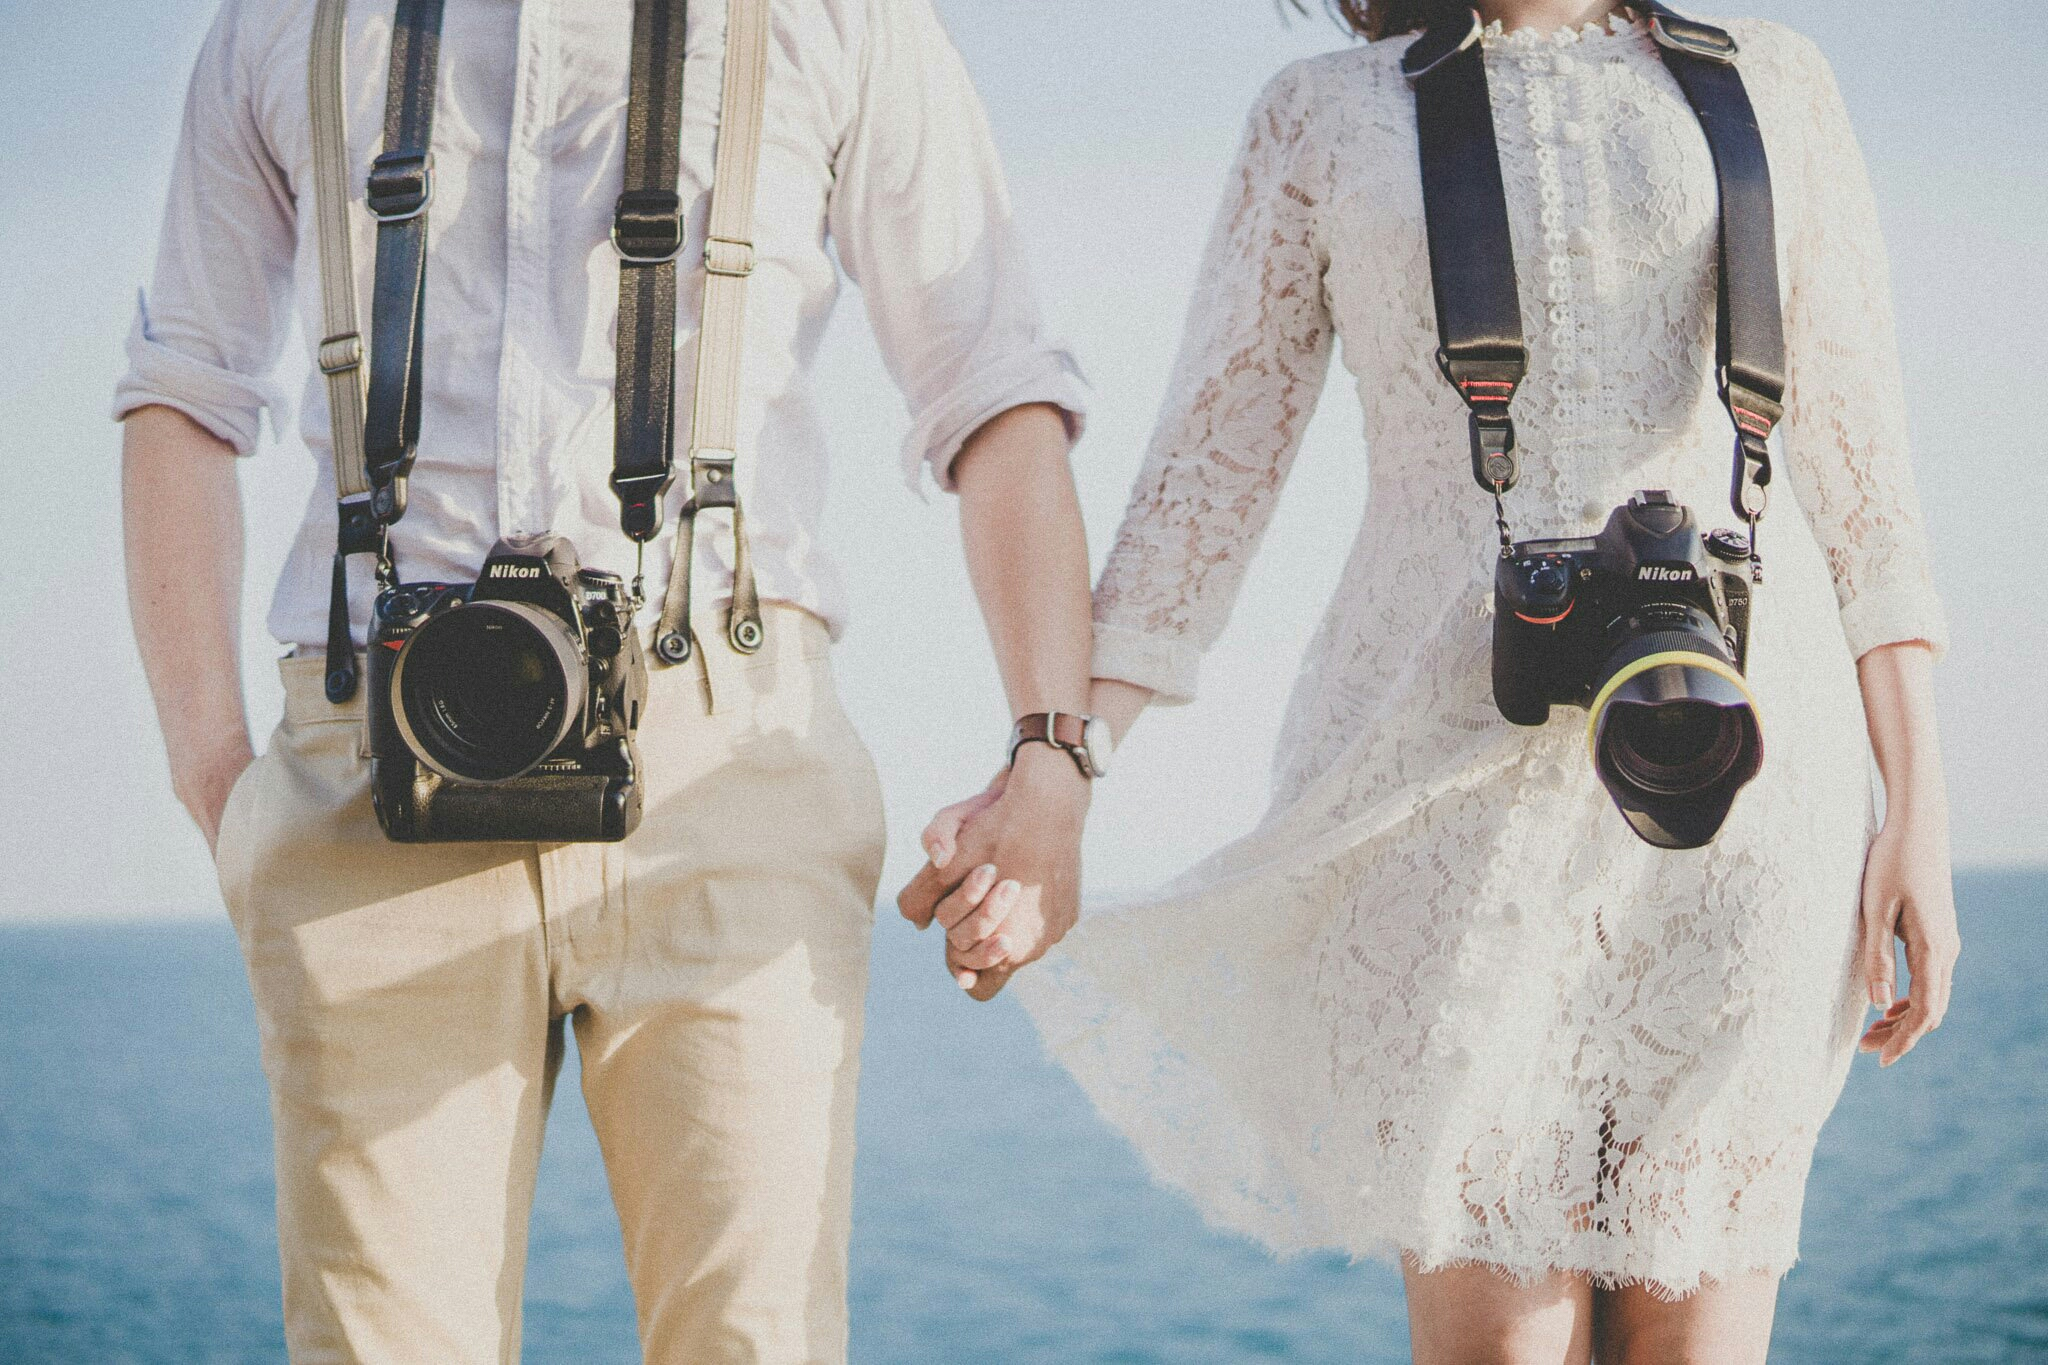 Love and camera 😃😃😃 #FreeToEdit #love #photography #vintage